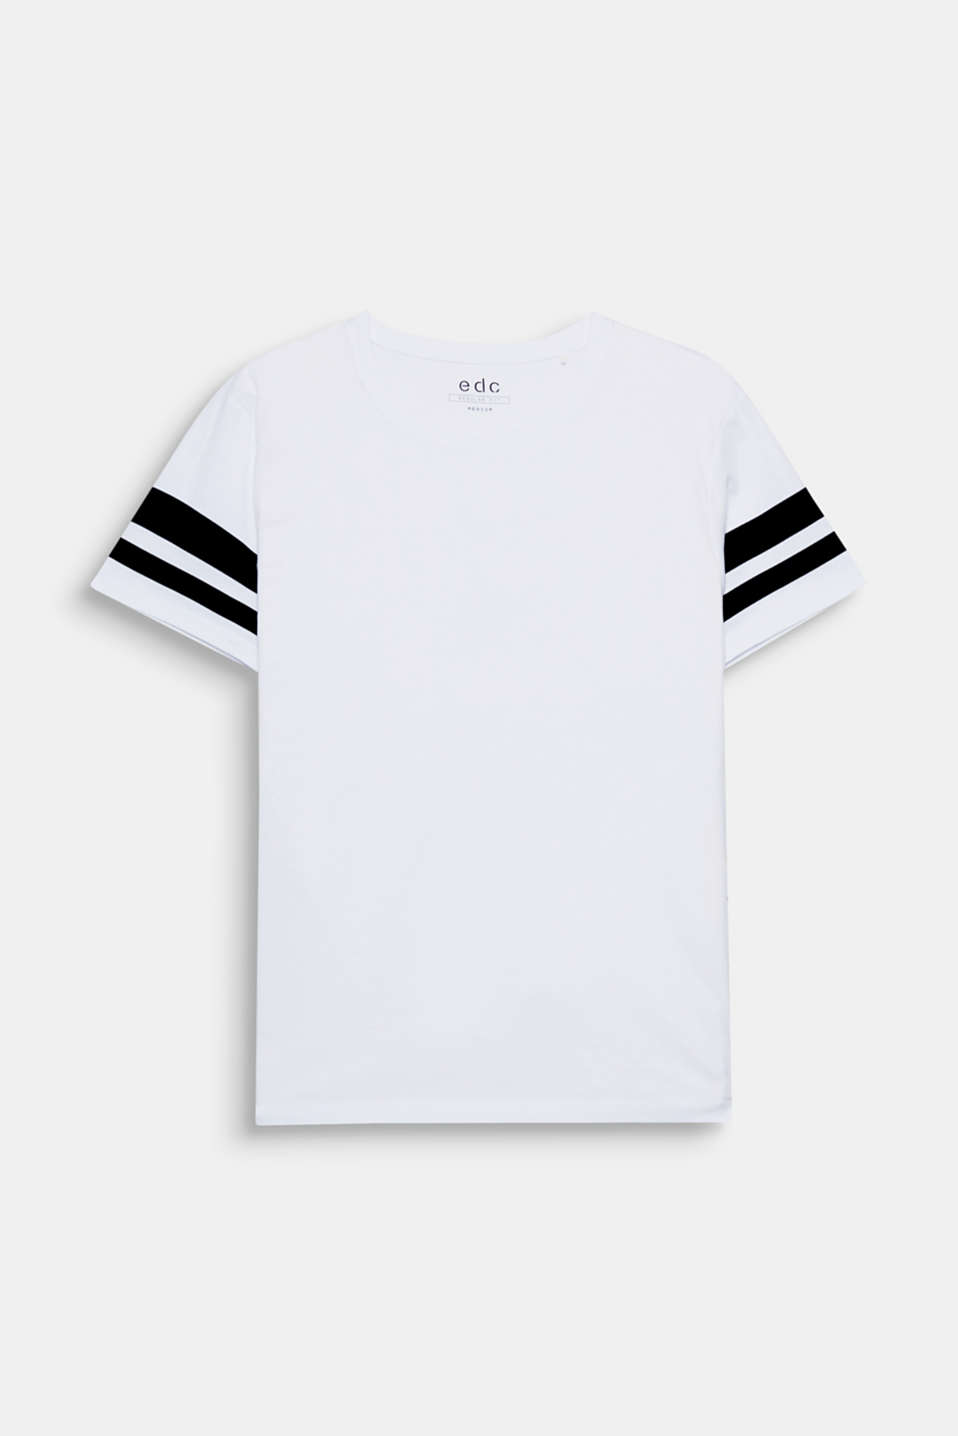 The accentuated stripes on the sleeves give this T-shirt an urban sporty look.